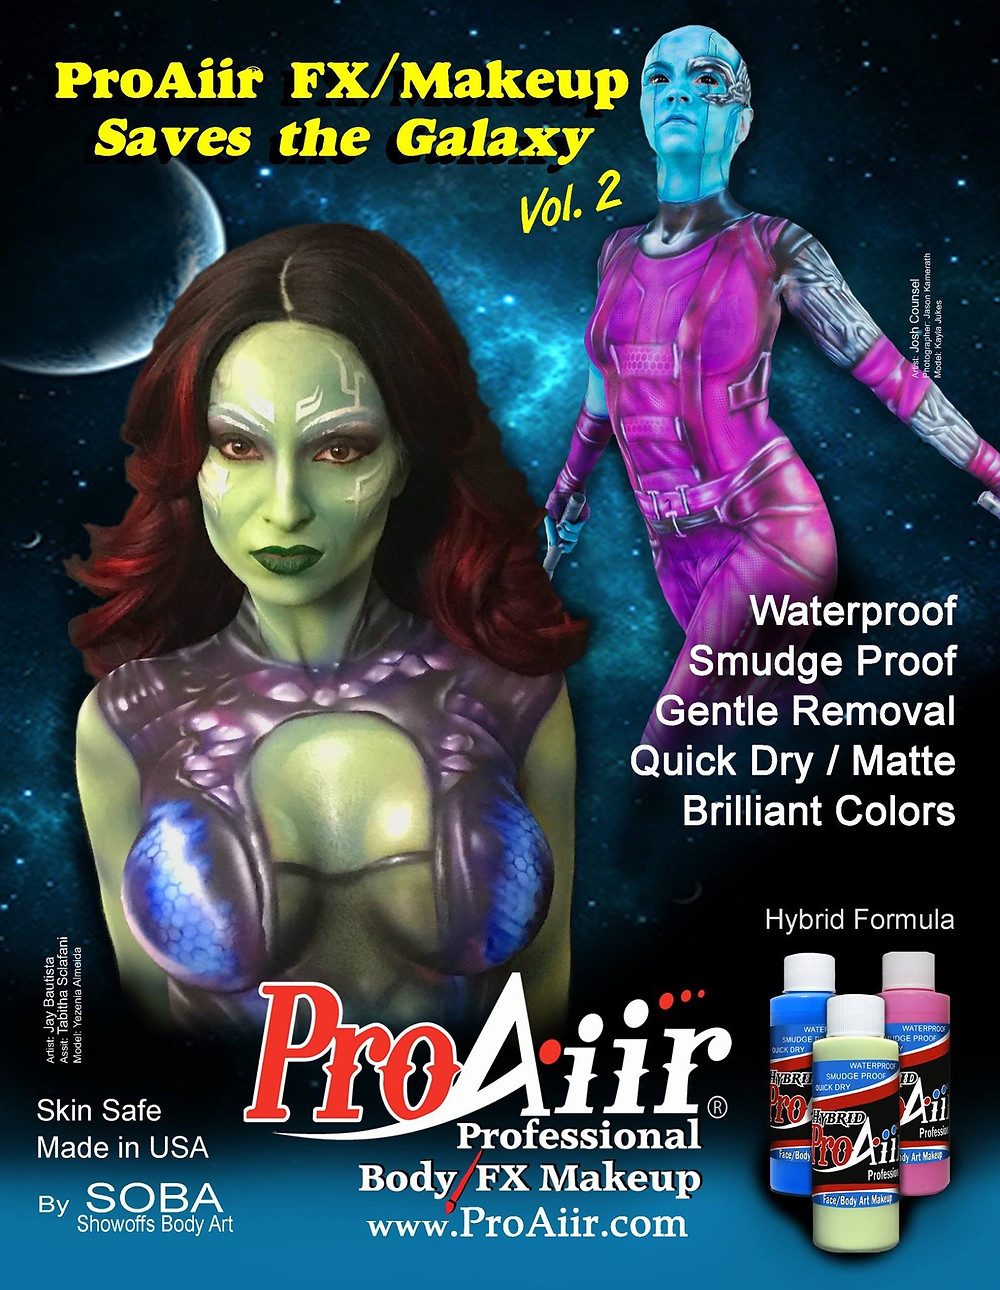 Body Painting of Gamora from Guardians of the Galaxy. Body Painting of Nebula from Guardians of the Galaxy.